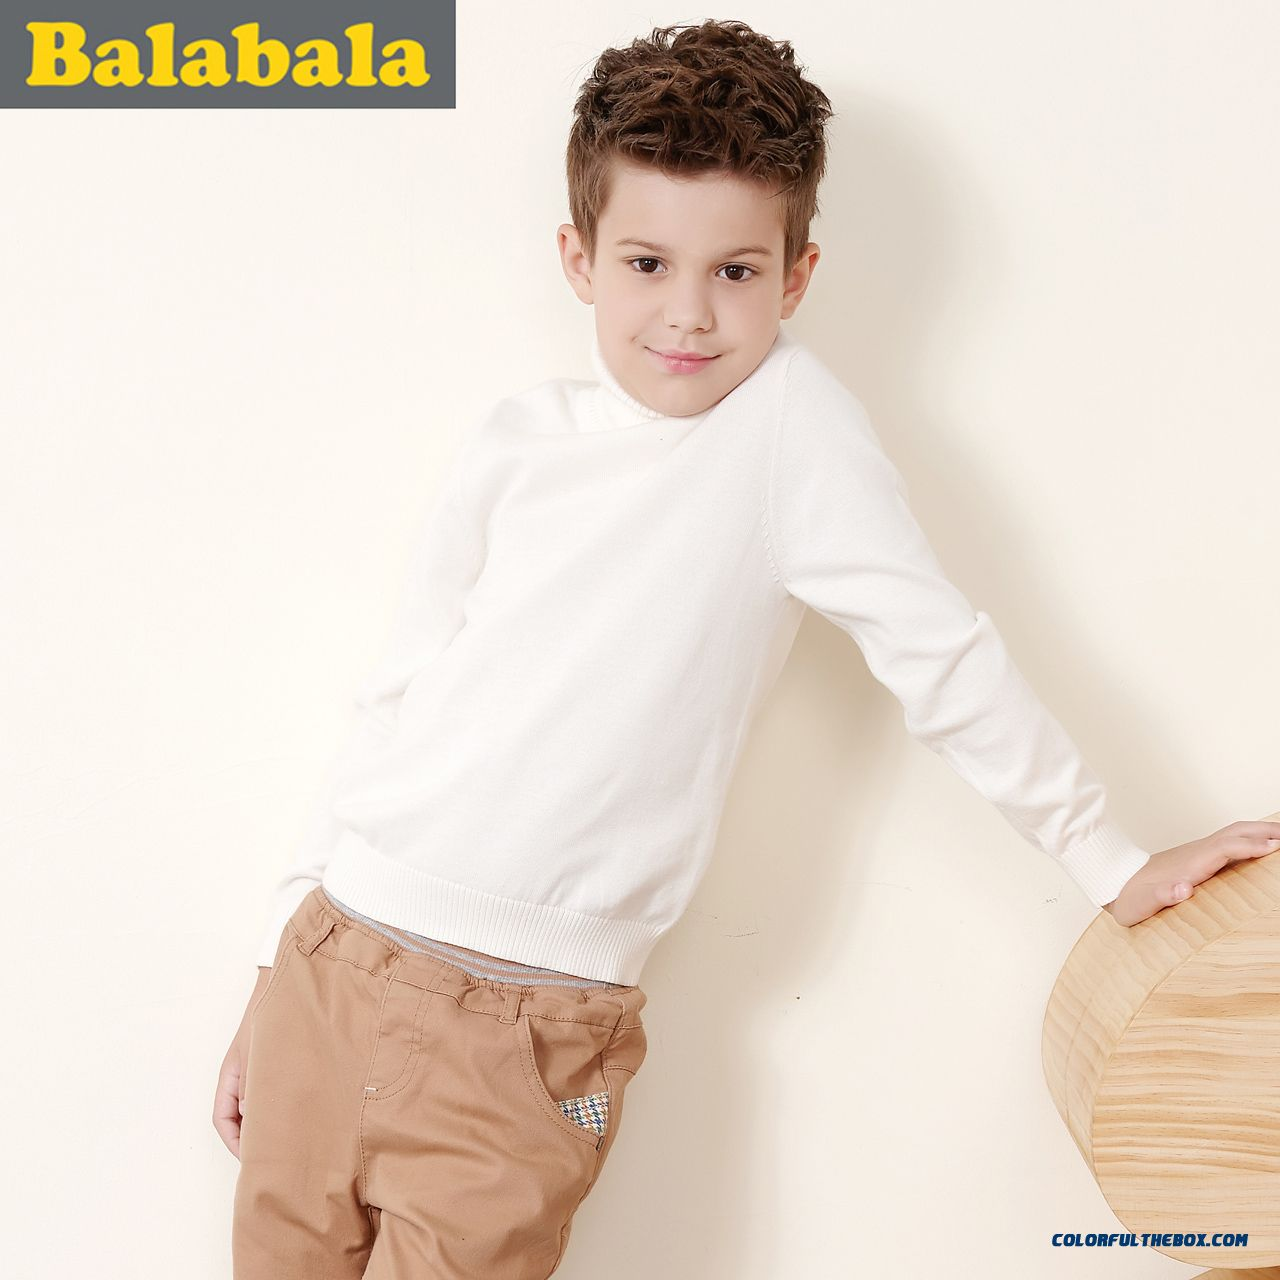 Balabala Kids Clothing Boy Sweater Pullover Sweater With High Collar Sweater Fall And Winter Kids' Bottoming Shirt - more images 1